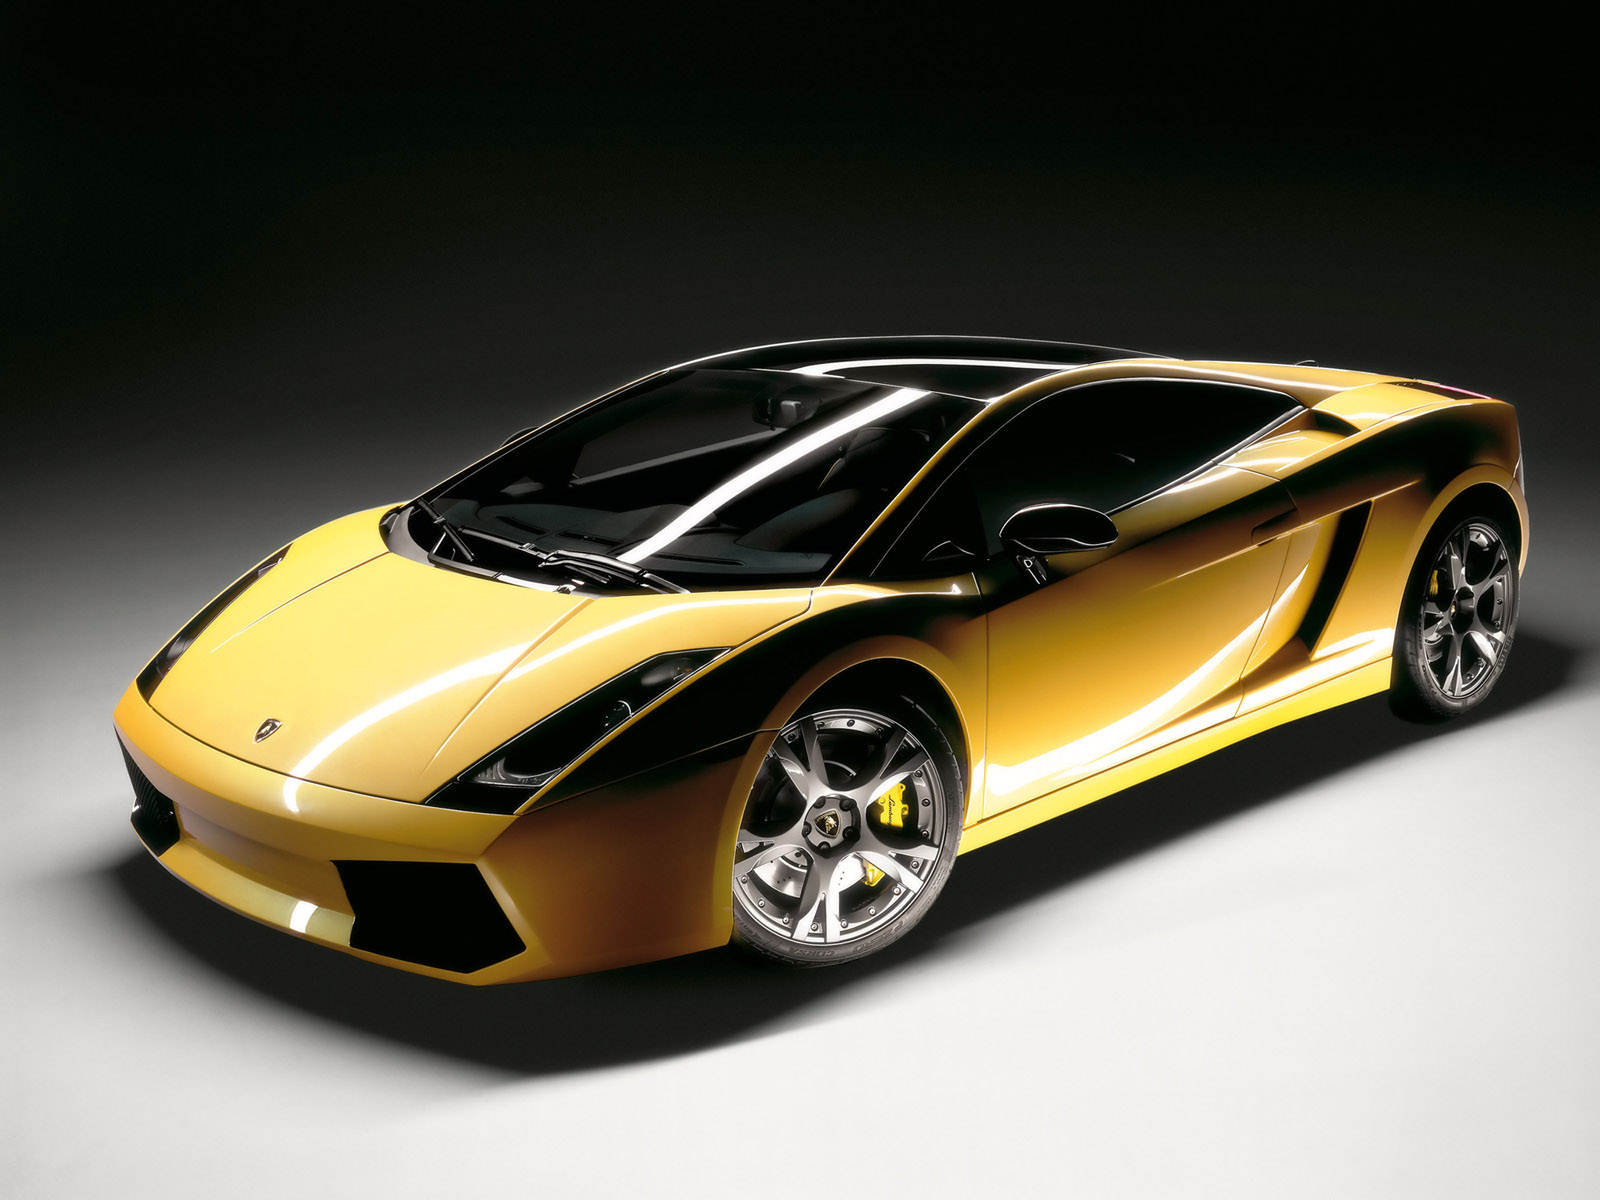 lamborghini%2Bgallardo%2Bwallpapers%2Bby%2Bcool%2Bimages%2B%2525284%252529 Lamborghini Wallpaper Hd 2011